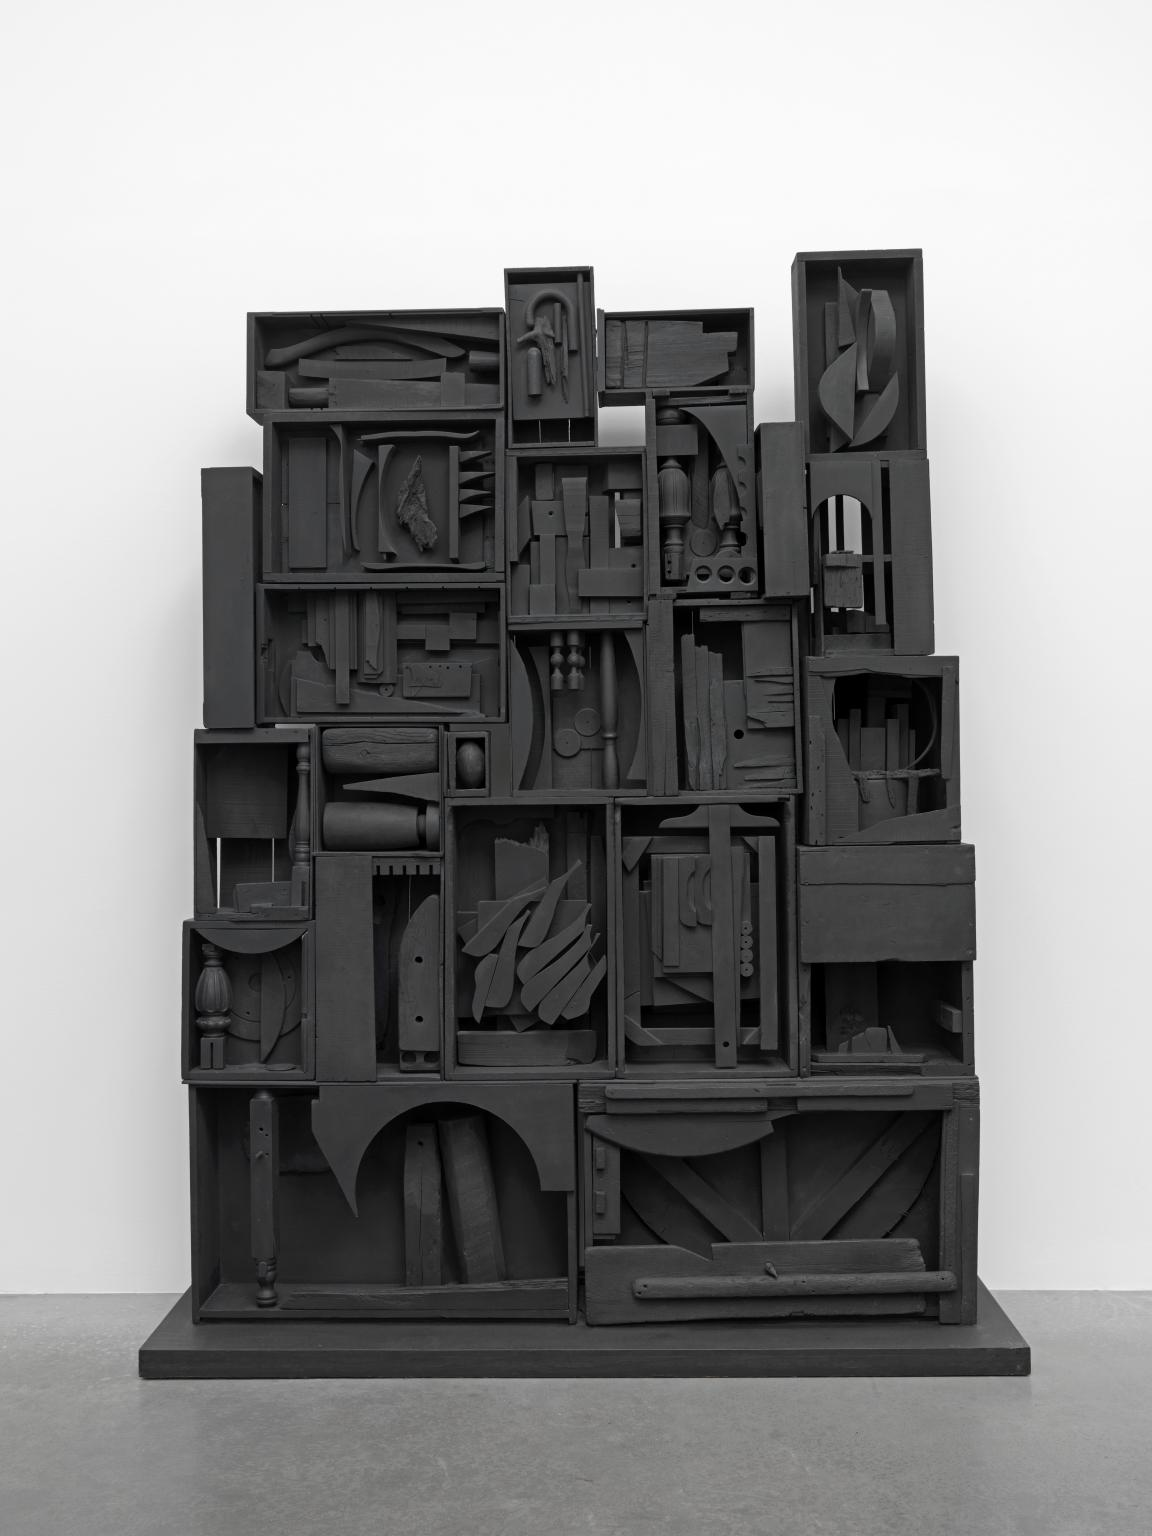 Louise Nevelson, Black Wall, 1959